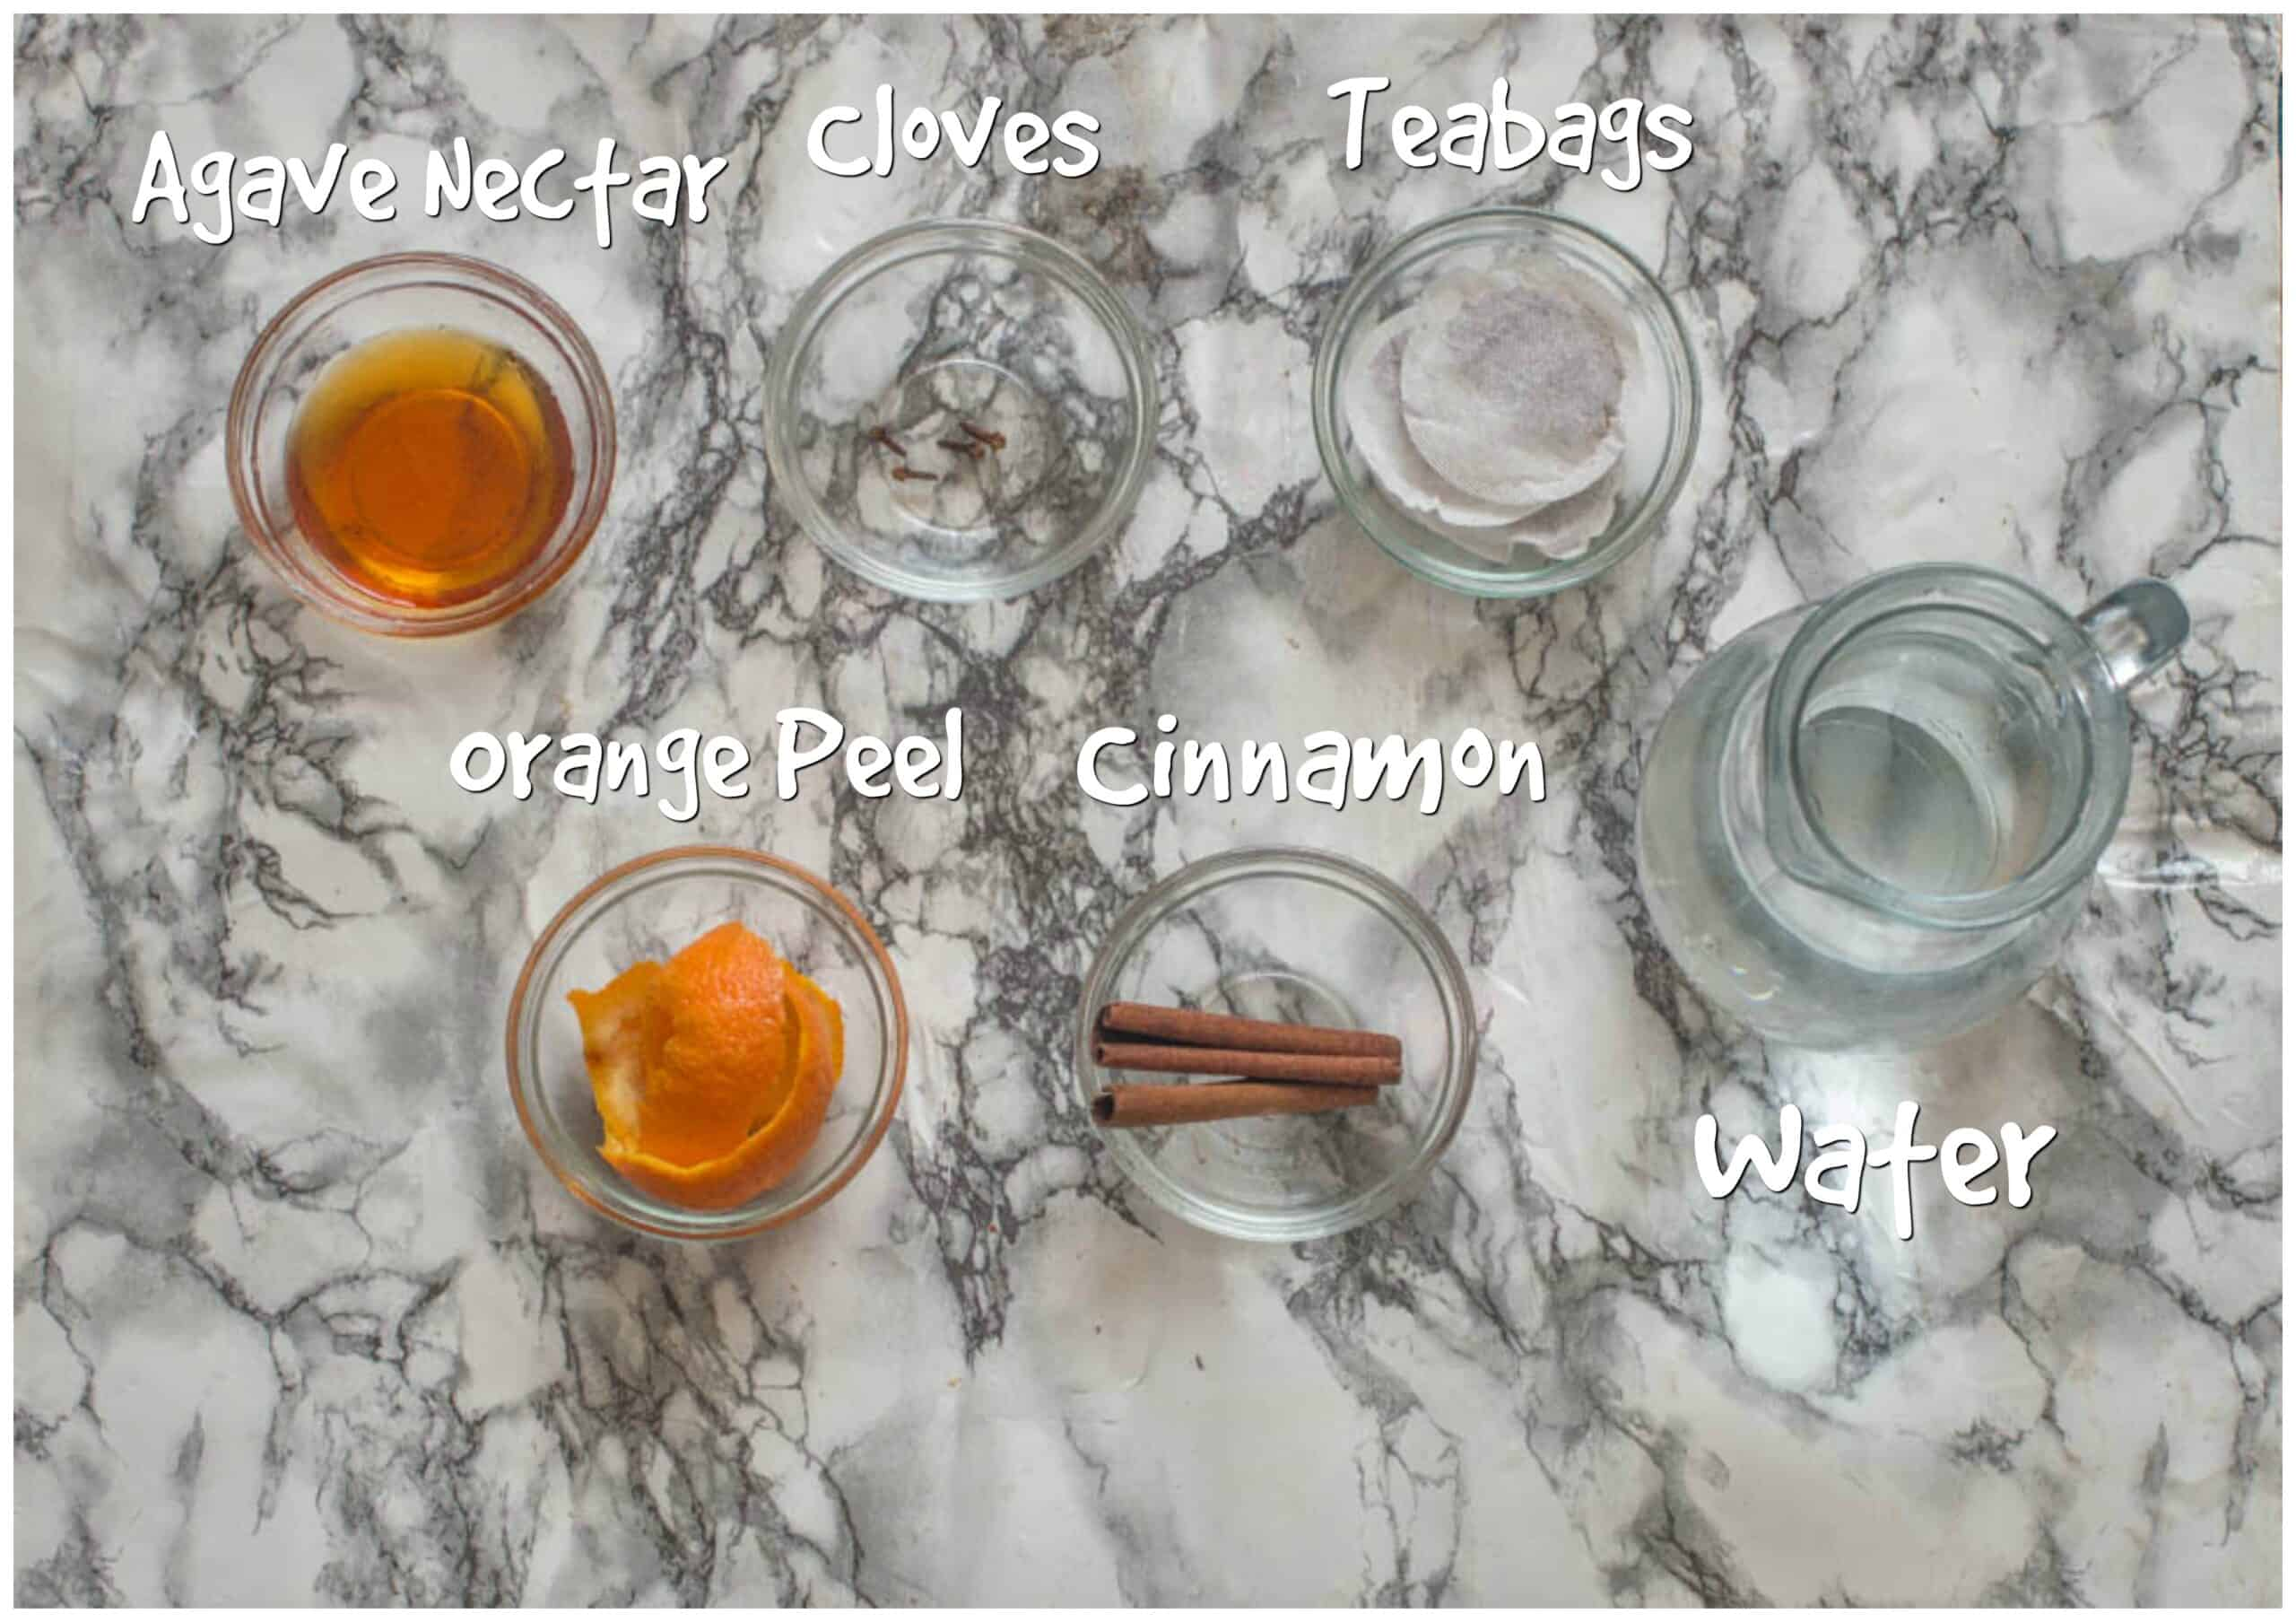 ingredients for cinnamon orange cold brew tea